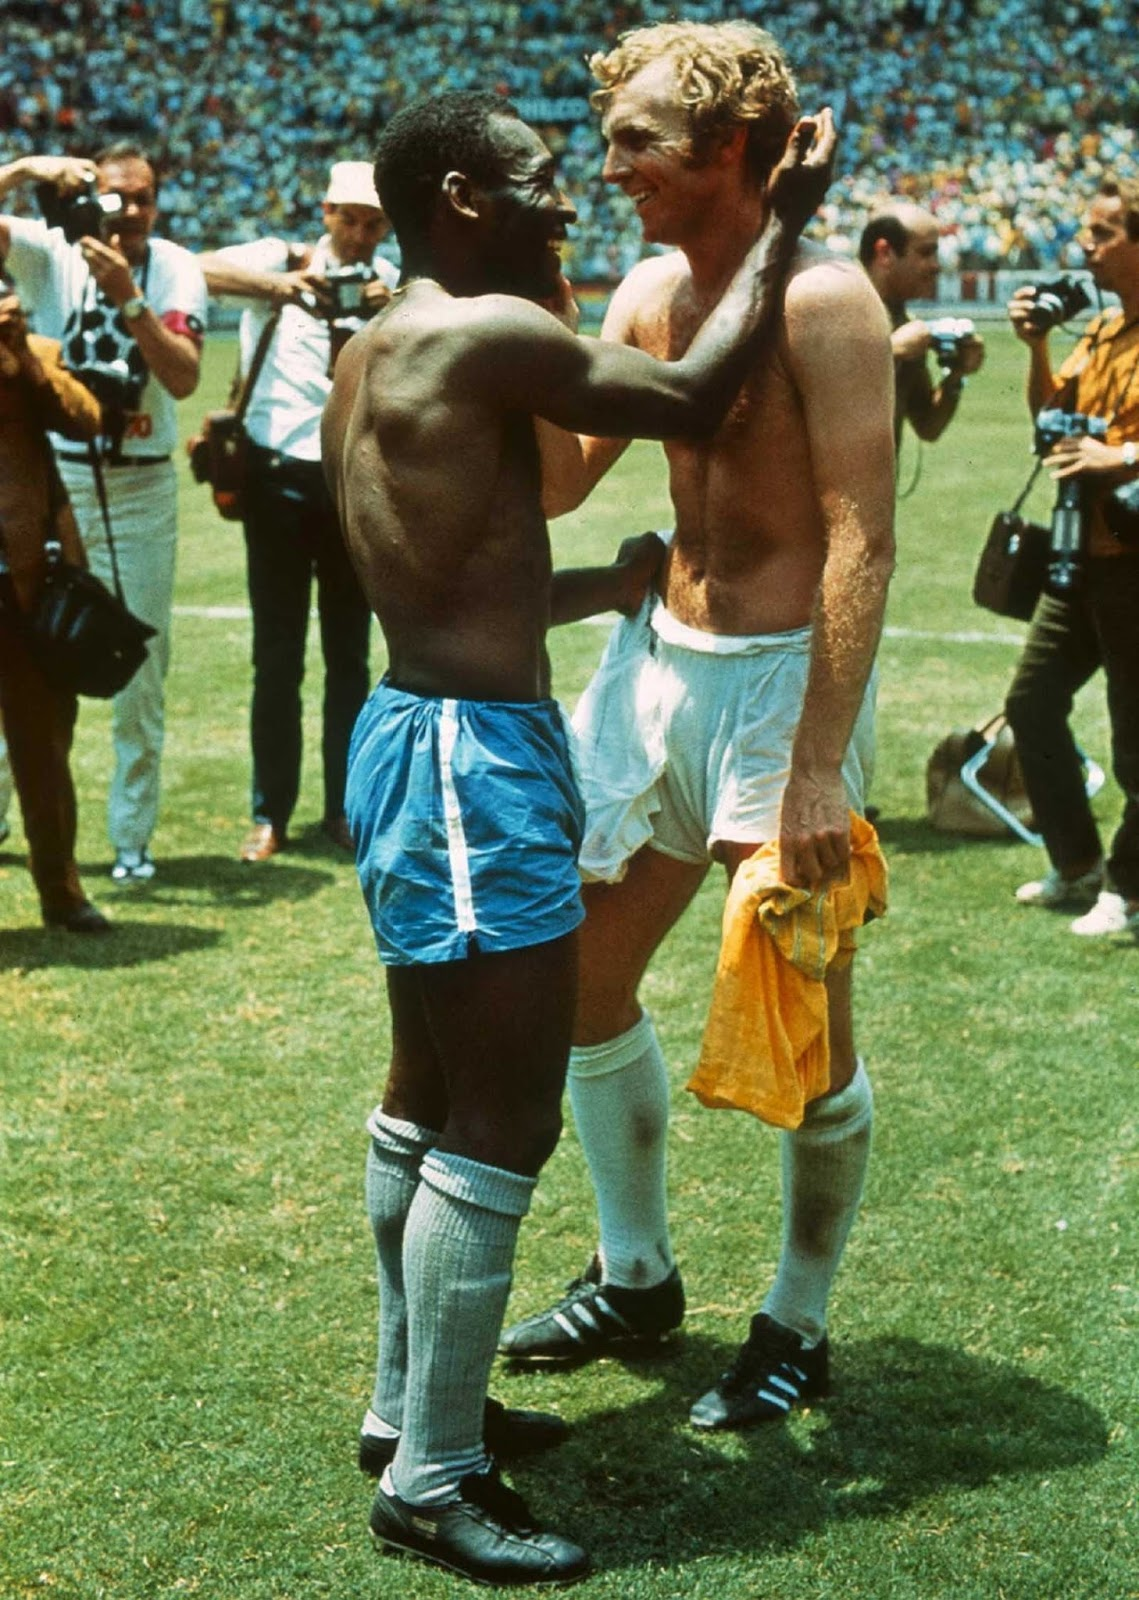 Pele and Bobby Moore Swap Jerseys After the Match